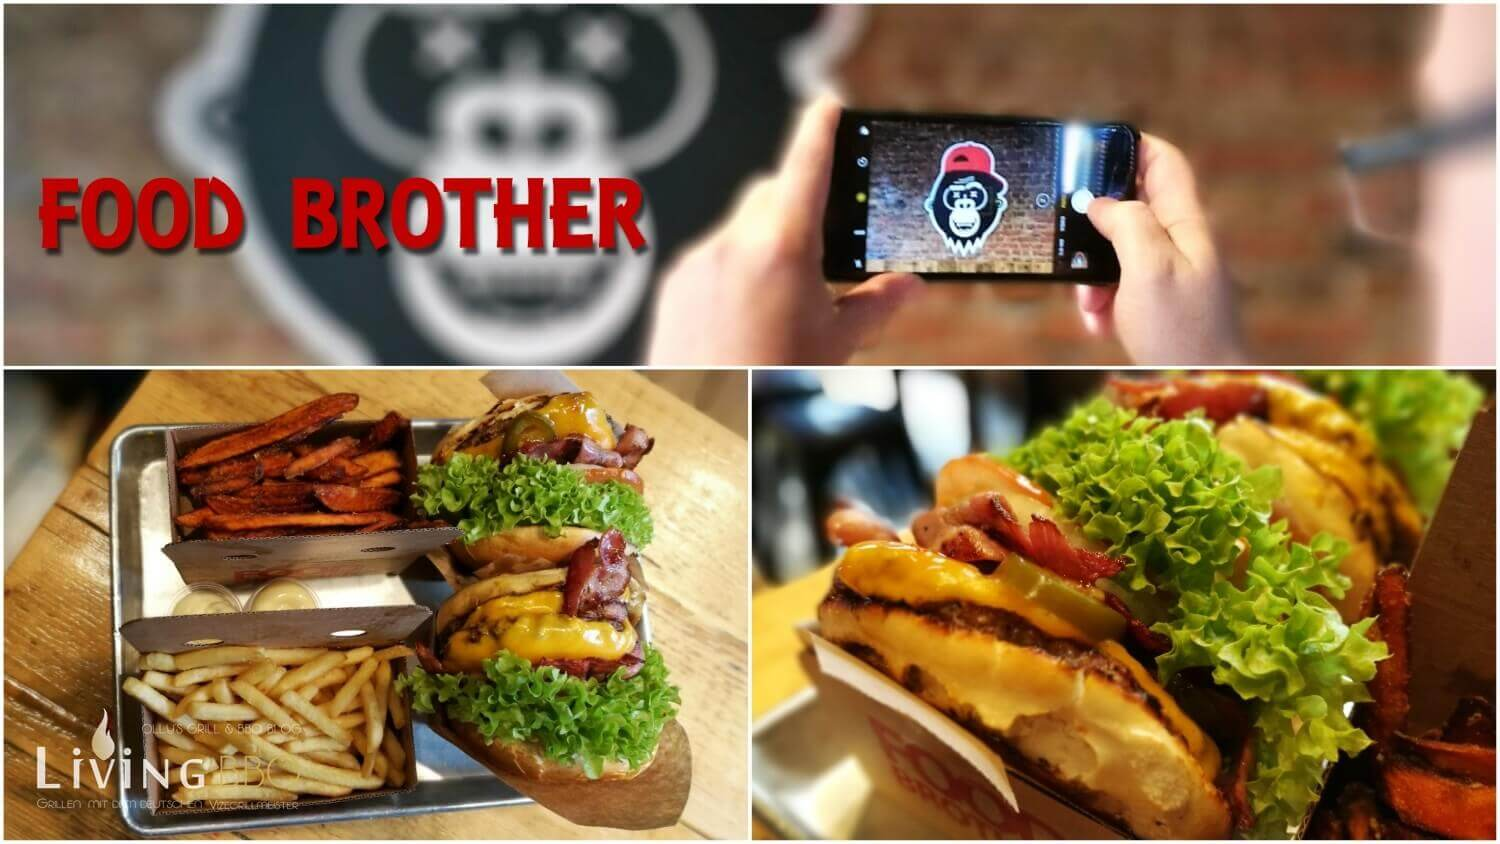 Food Brother Burger Dortmund [object object]_Food Brother Dortmund